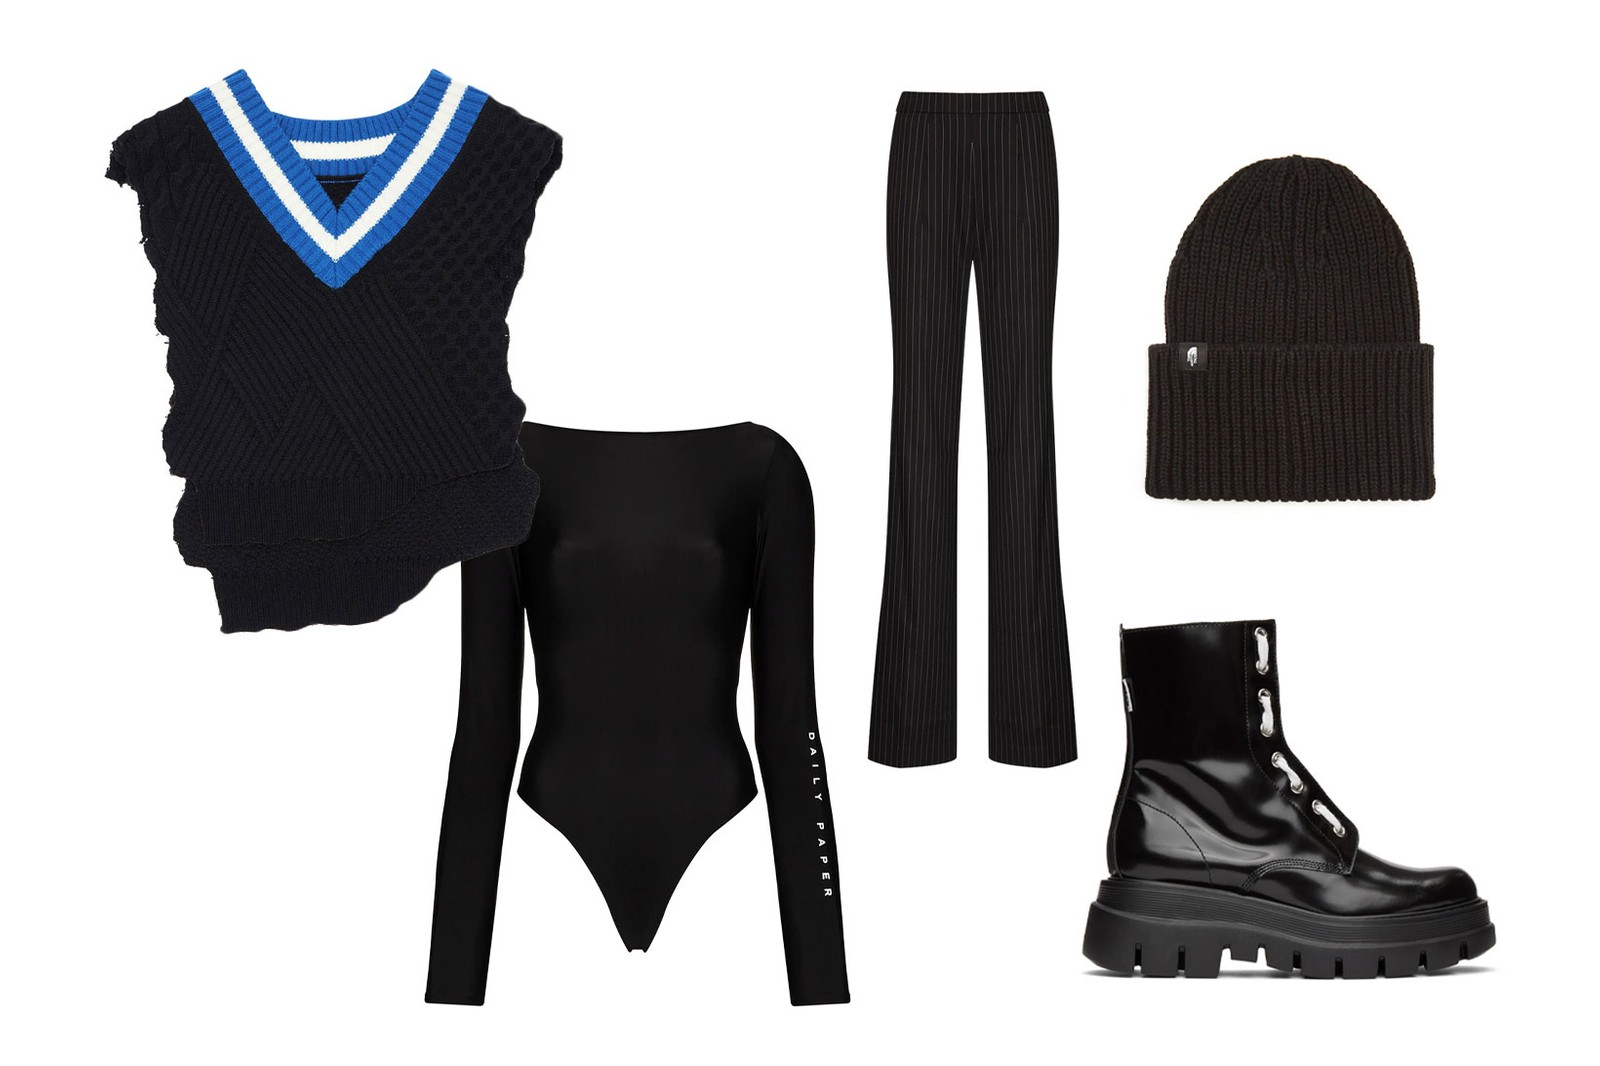 sweater knit vest all black outfits styling ader error warning clan daily paper bodysuit pants beanie msgm